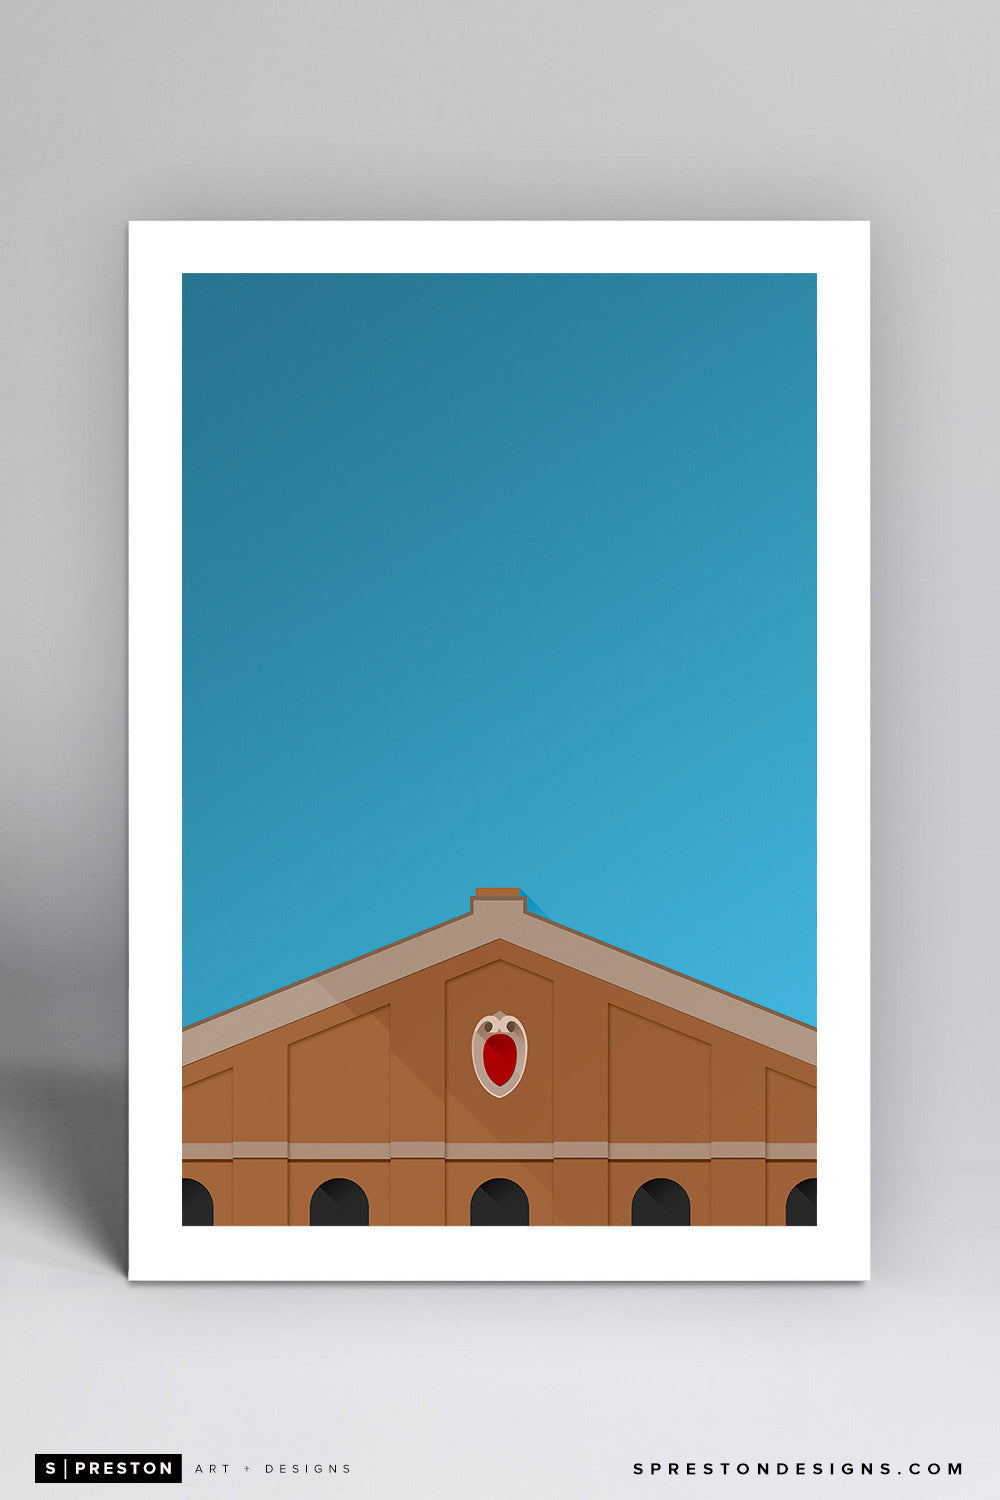 Minimalist Camp Randall Stadium - University of Wisconsin - S. Preston